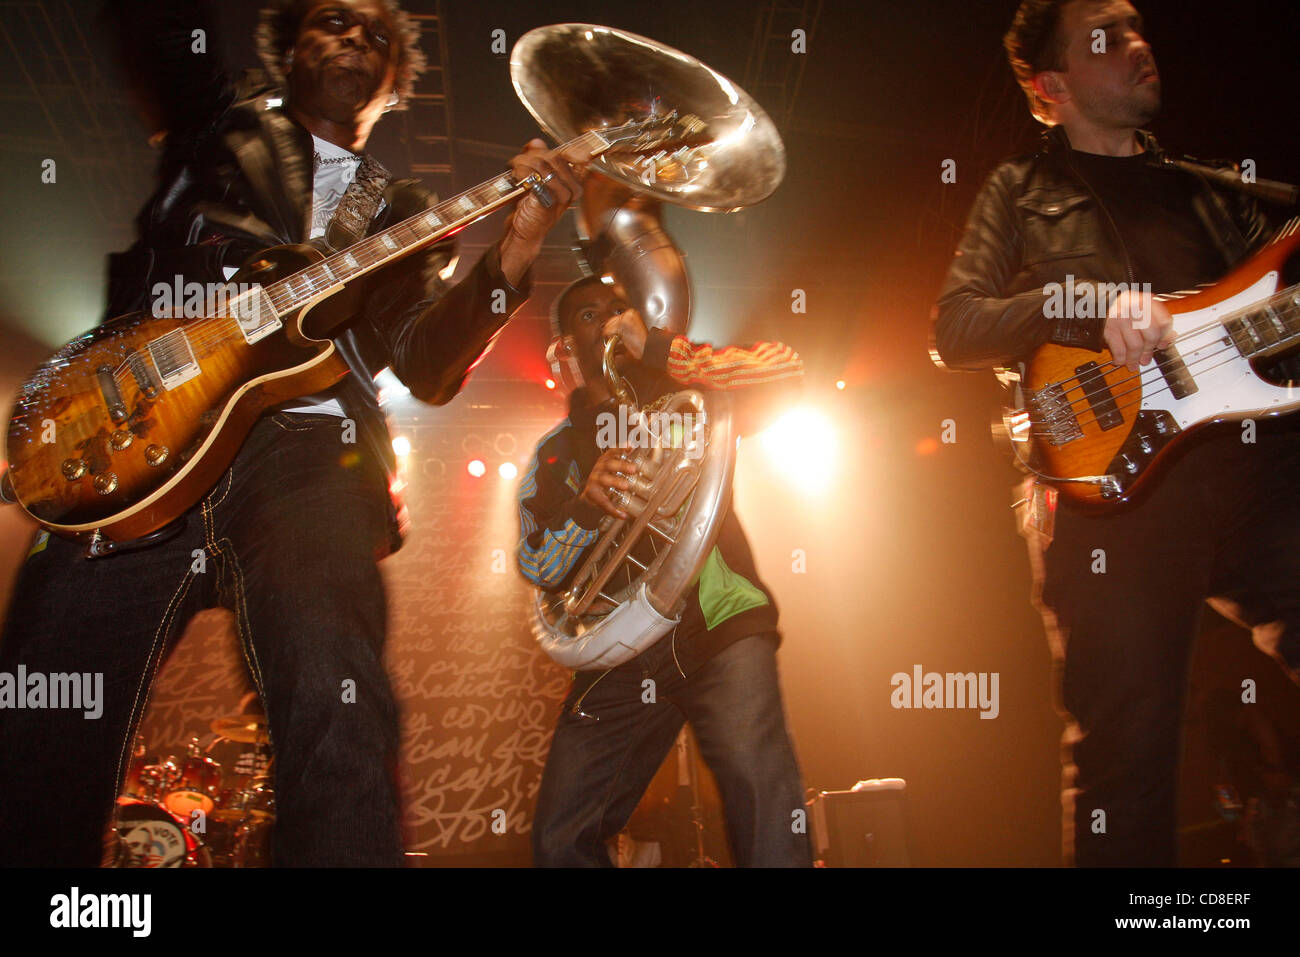 The Roots performing at Roseland Ballroom on October 28, 2008. Vocals -with cap and glasses , red jacket- Black Stock Photo